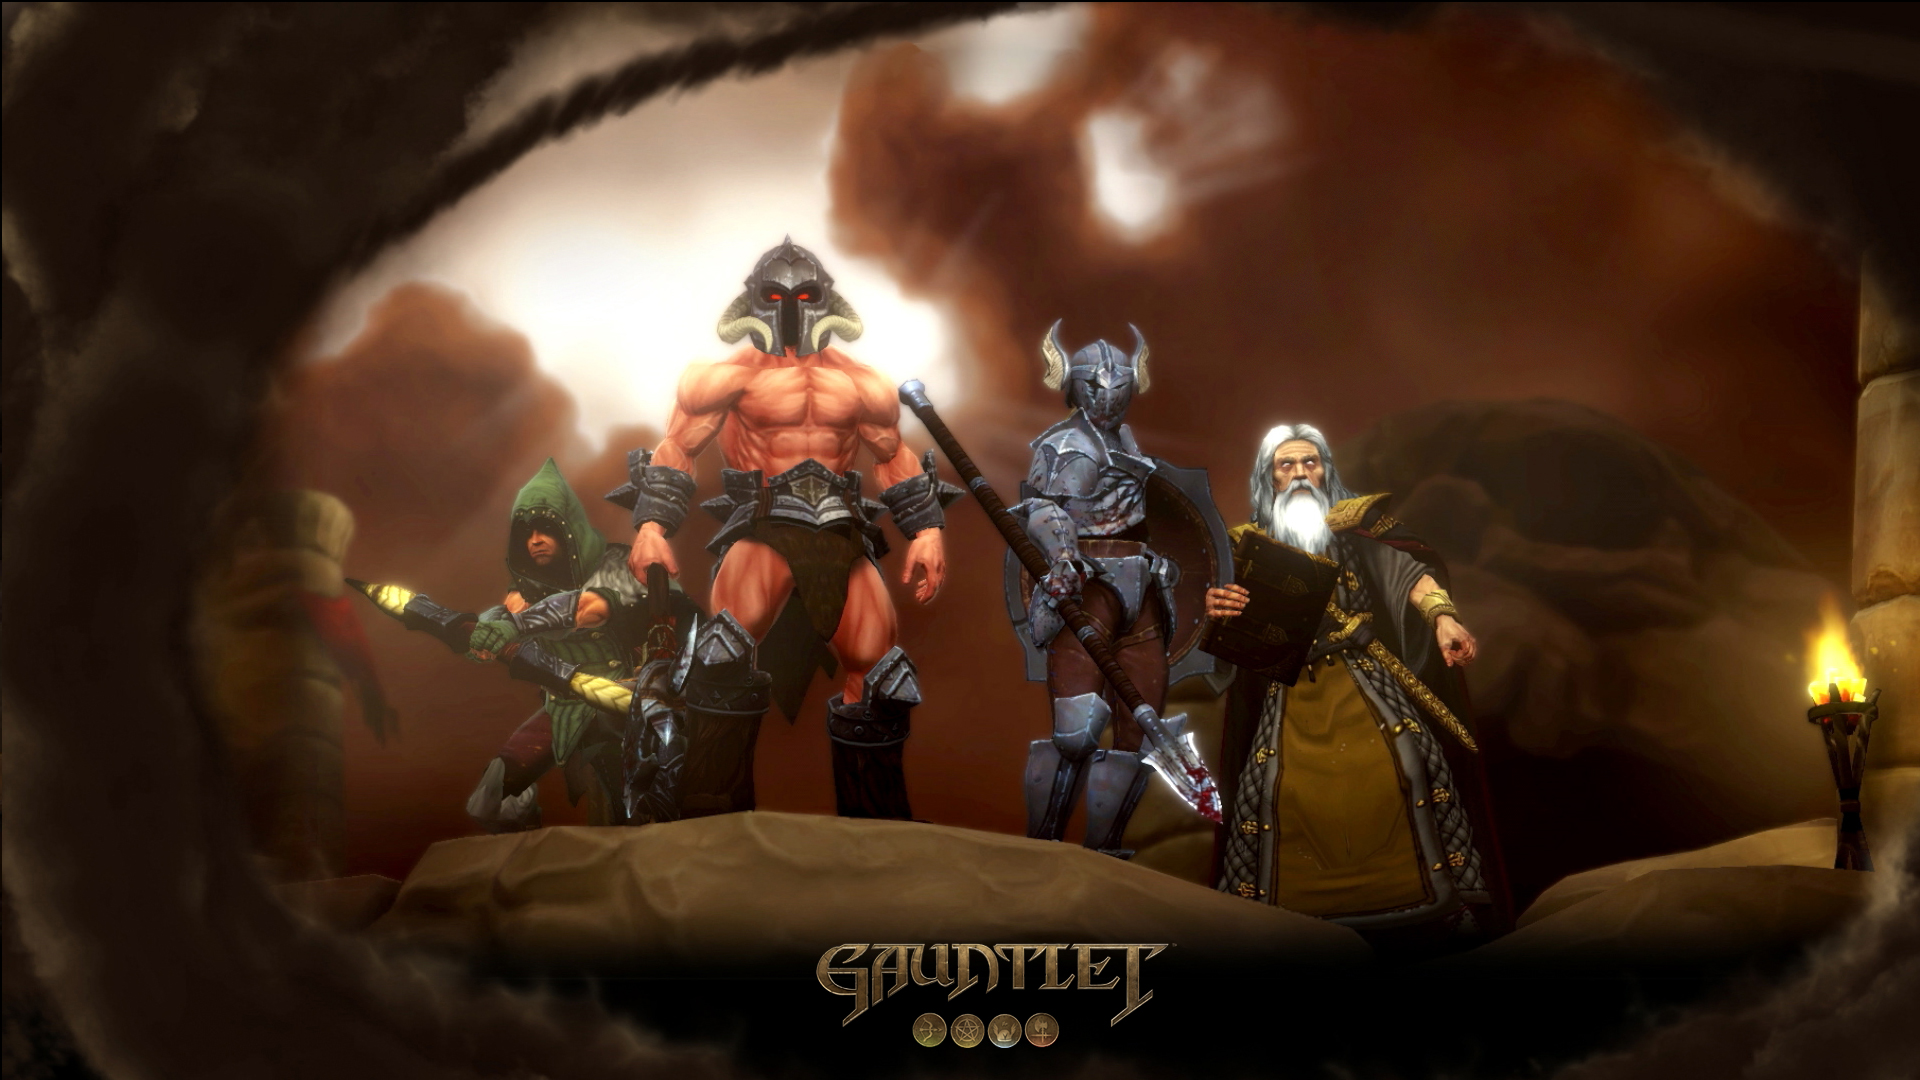 Gauntlet Classic remade